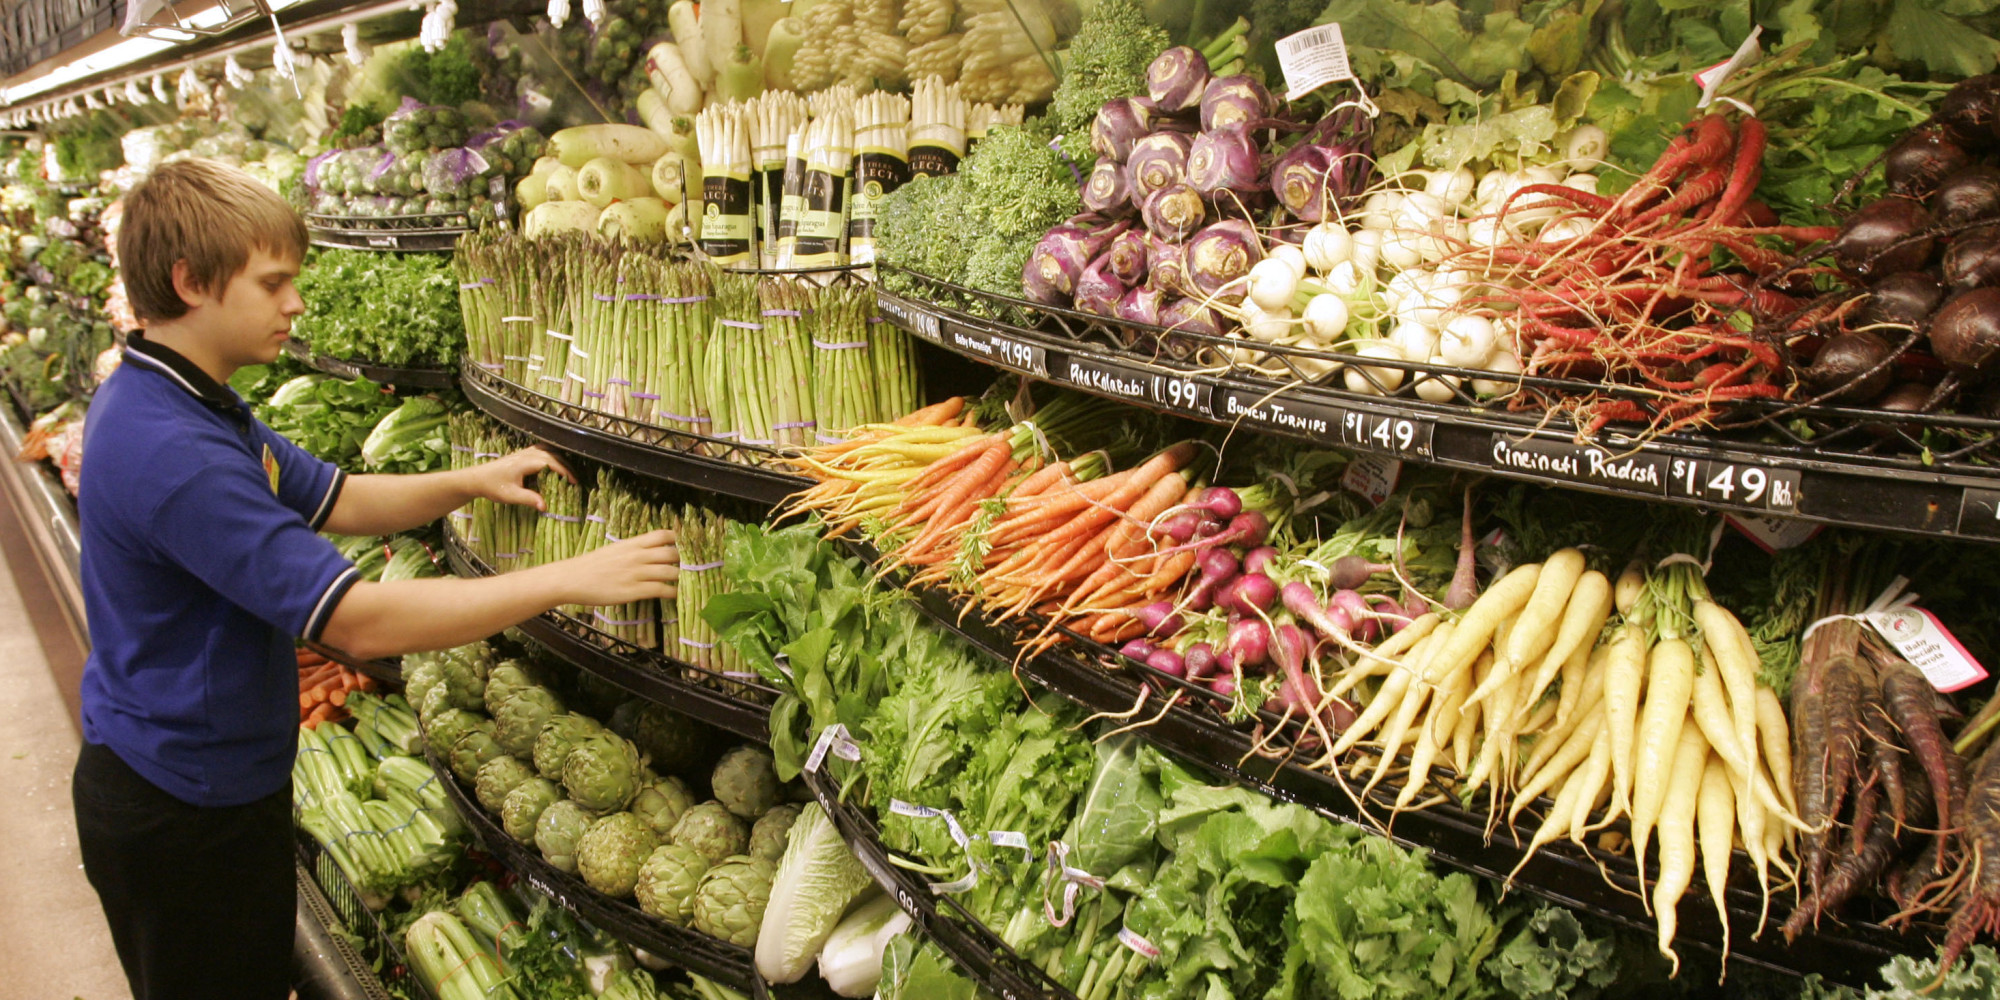 It's Safer To Shop In a Supermarket Than a Farmer's Market